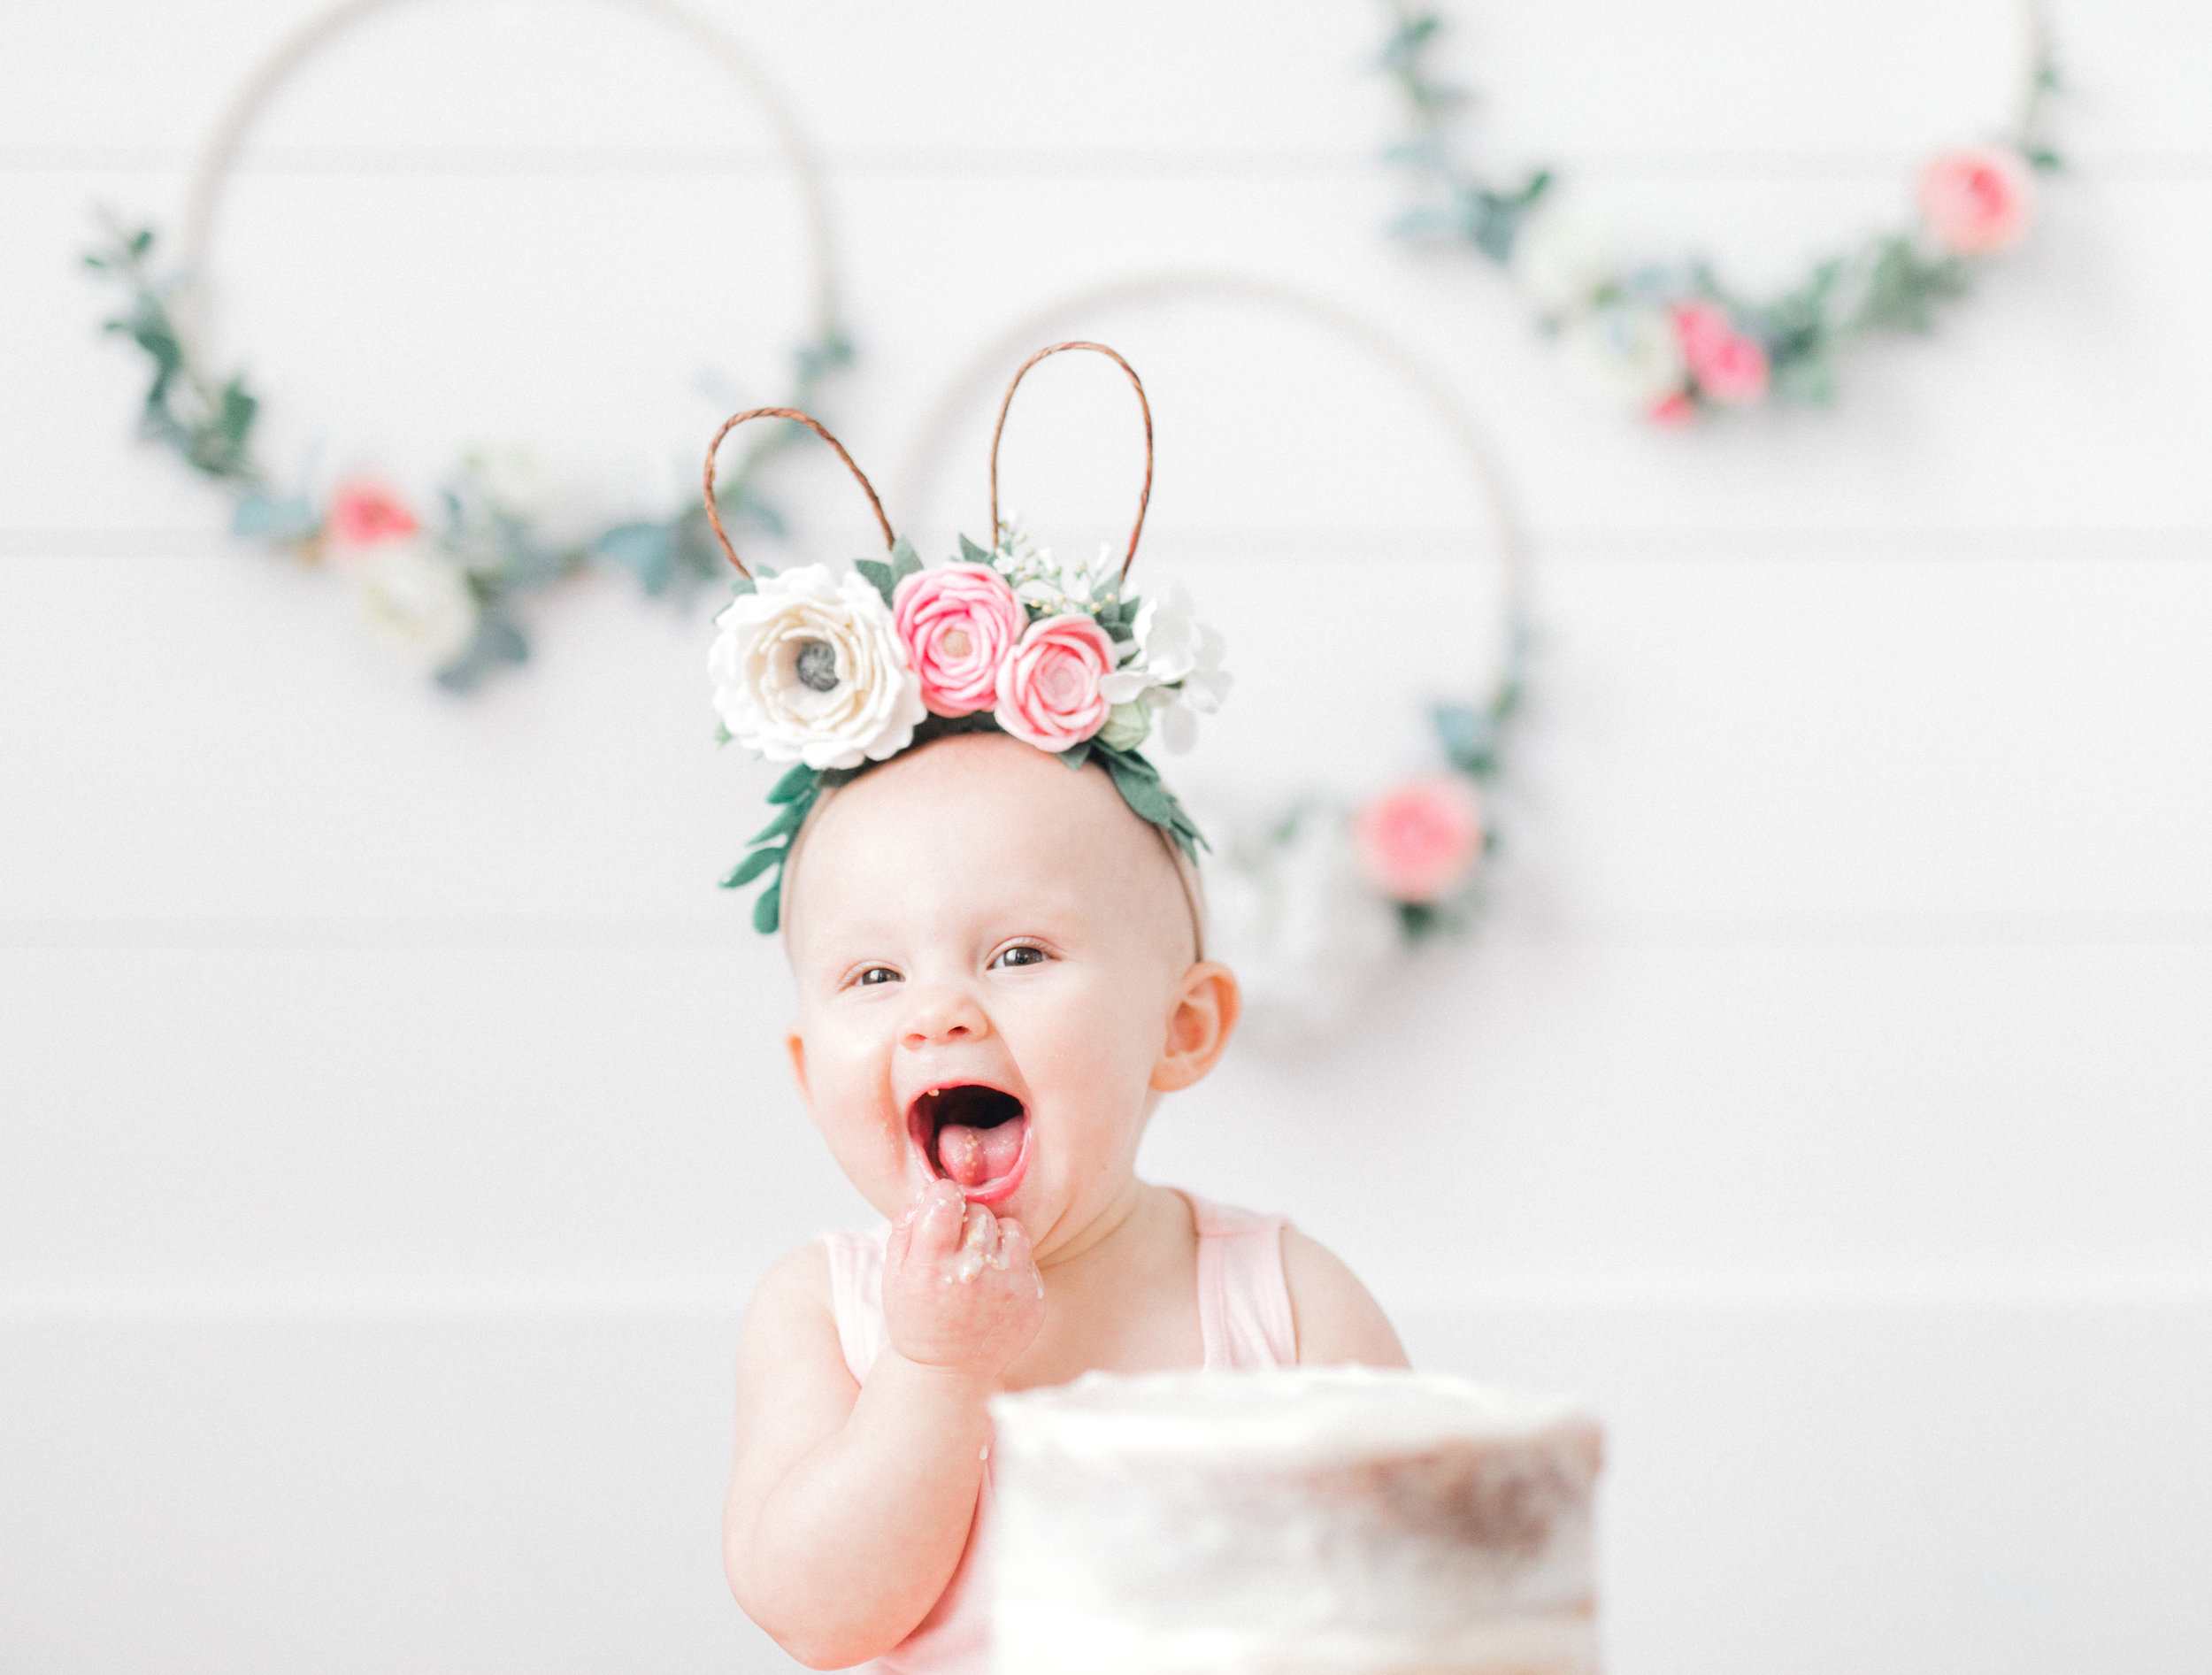 """Hi friends! This is my first personal blog post, but I am so excited to share this one with you all because it is all about my sweet girl and our family these past few weeks as we celebrated her first birthday! I have always heard people say that time goes by so quickly when you have children, and y'all, they are not lying. I don't know how this past year went by so fast, but here we are and I have a one-year-old! I'm a ball of mixed emotions just thinking about it. I miss my tiny baby girl, but I love watching Anna grow into the sweet, sassy, and funny little girl that she is.  I knew I wanted to do a blog post about Anna's party so that I could give credit to all the people who helped make it so special (because yes, I'm crazy, and I used a lot of my talented friends to help pull it off). The inspiration for the party came from Anna's birth date; she was born on Easter Sunday of last year, so I knew that I wanted to do something with bunnies. Bunnies have always been her theme, and we've called her our """"Little Bunny Girl,"""" so that's where I drew inspiration. Once I started looking online at bunny parties, I had a hard time figuring out which direction I wanted to go because there is A LOT of stuff out there and a lot of different decorations and bunnies! The first decorations that came together were the floral hoops (I saw them some somewhere online). I asked my friend from Covenant Threads to make them and I was blown away. Once I had the hoops, they acted as the centerpiece for everything else (the cake topper, the headbands, the flowers).  I'll give you fair warning now… if you continue to scroll through this post, there are A LOT of pictures. The weeks leading up to it and the week of Anna's birthday, I took pictures of some of the decorations for the party and we had pictures taken of the party, a cake smash session, and one-year family photos. According to my Instagram poll, you all wanted to see """"ALL THE THINGS""""…so that's what I'll show you! I'll also put a"""